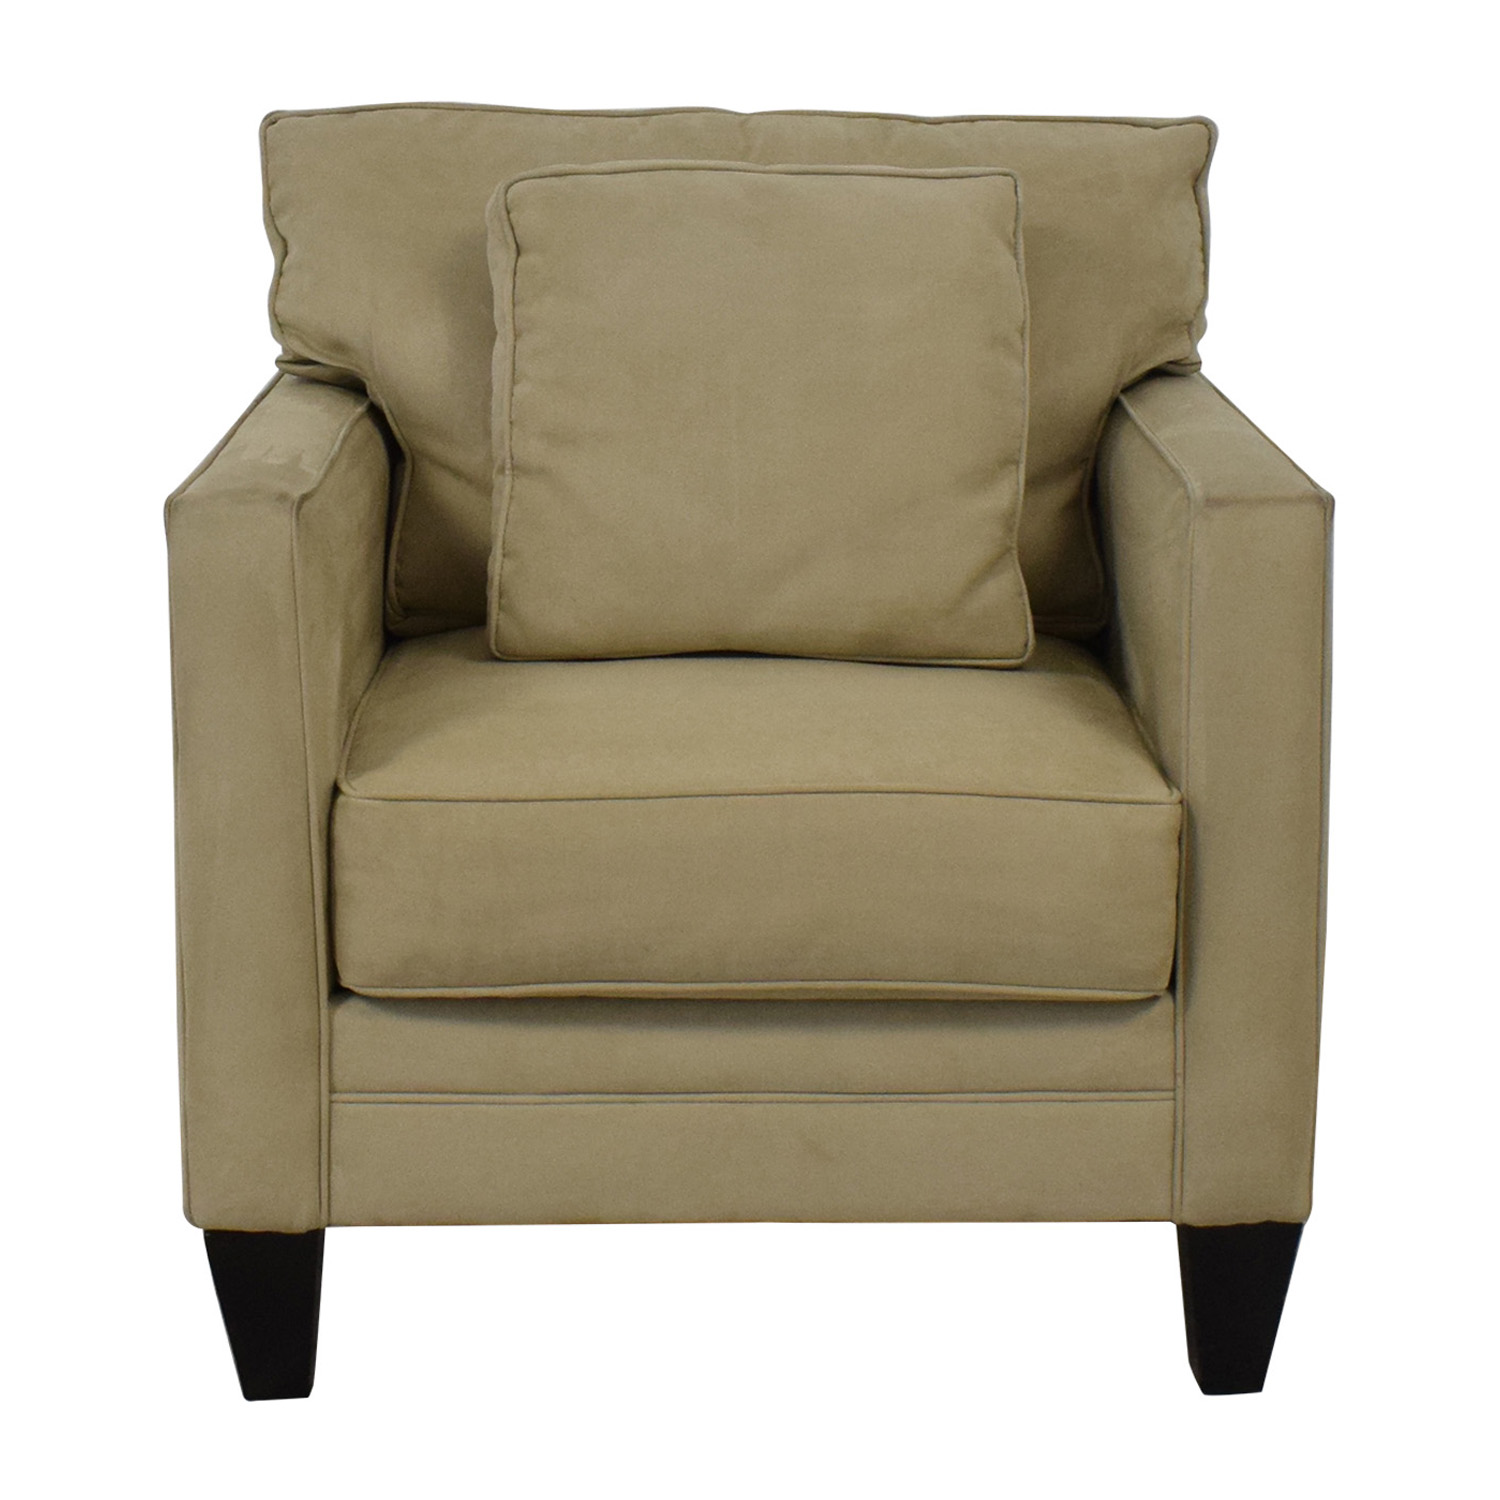 shop Bauhaus Furniture Suede Armchair Bauhaus Furniture Accent Chairs